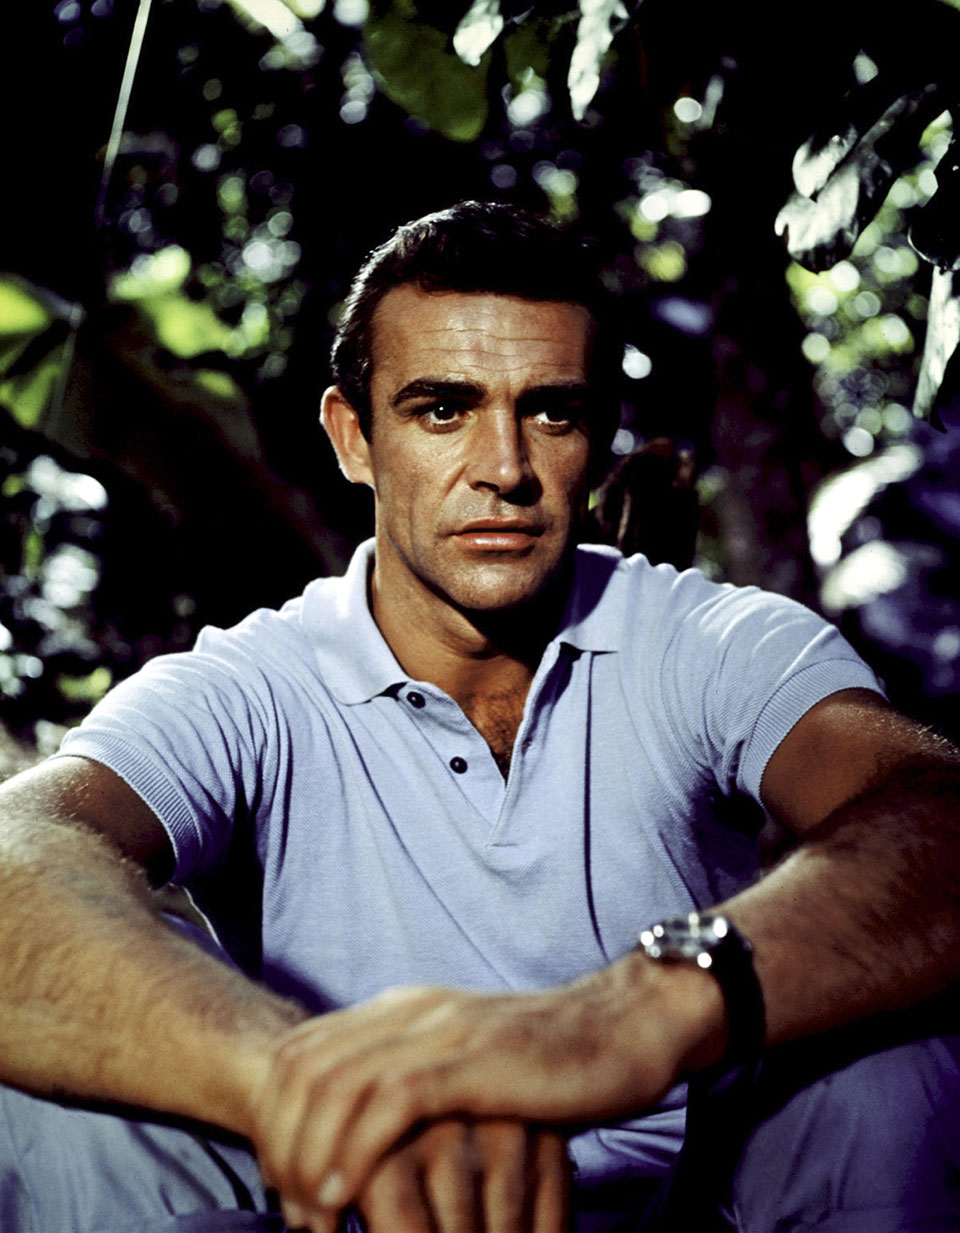 It is said that Ian Fleming lent Connery his Rolex as no watch sponsor was interested in providing a time-piece for Bond. The rubber strap is more rugged than the steel bracelet for actual diving and swimming.